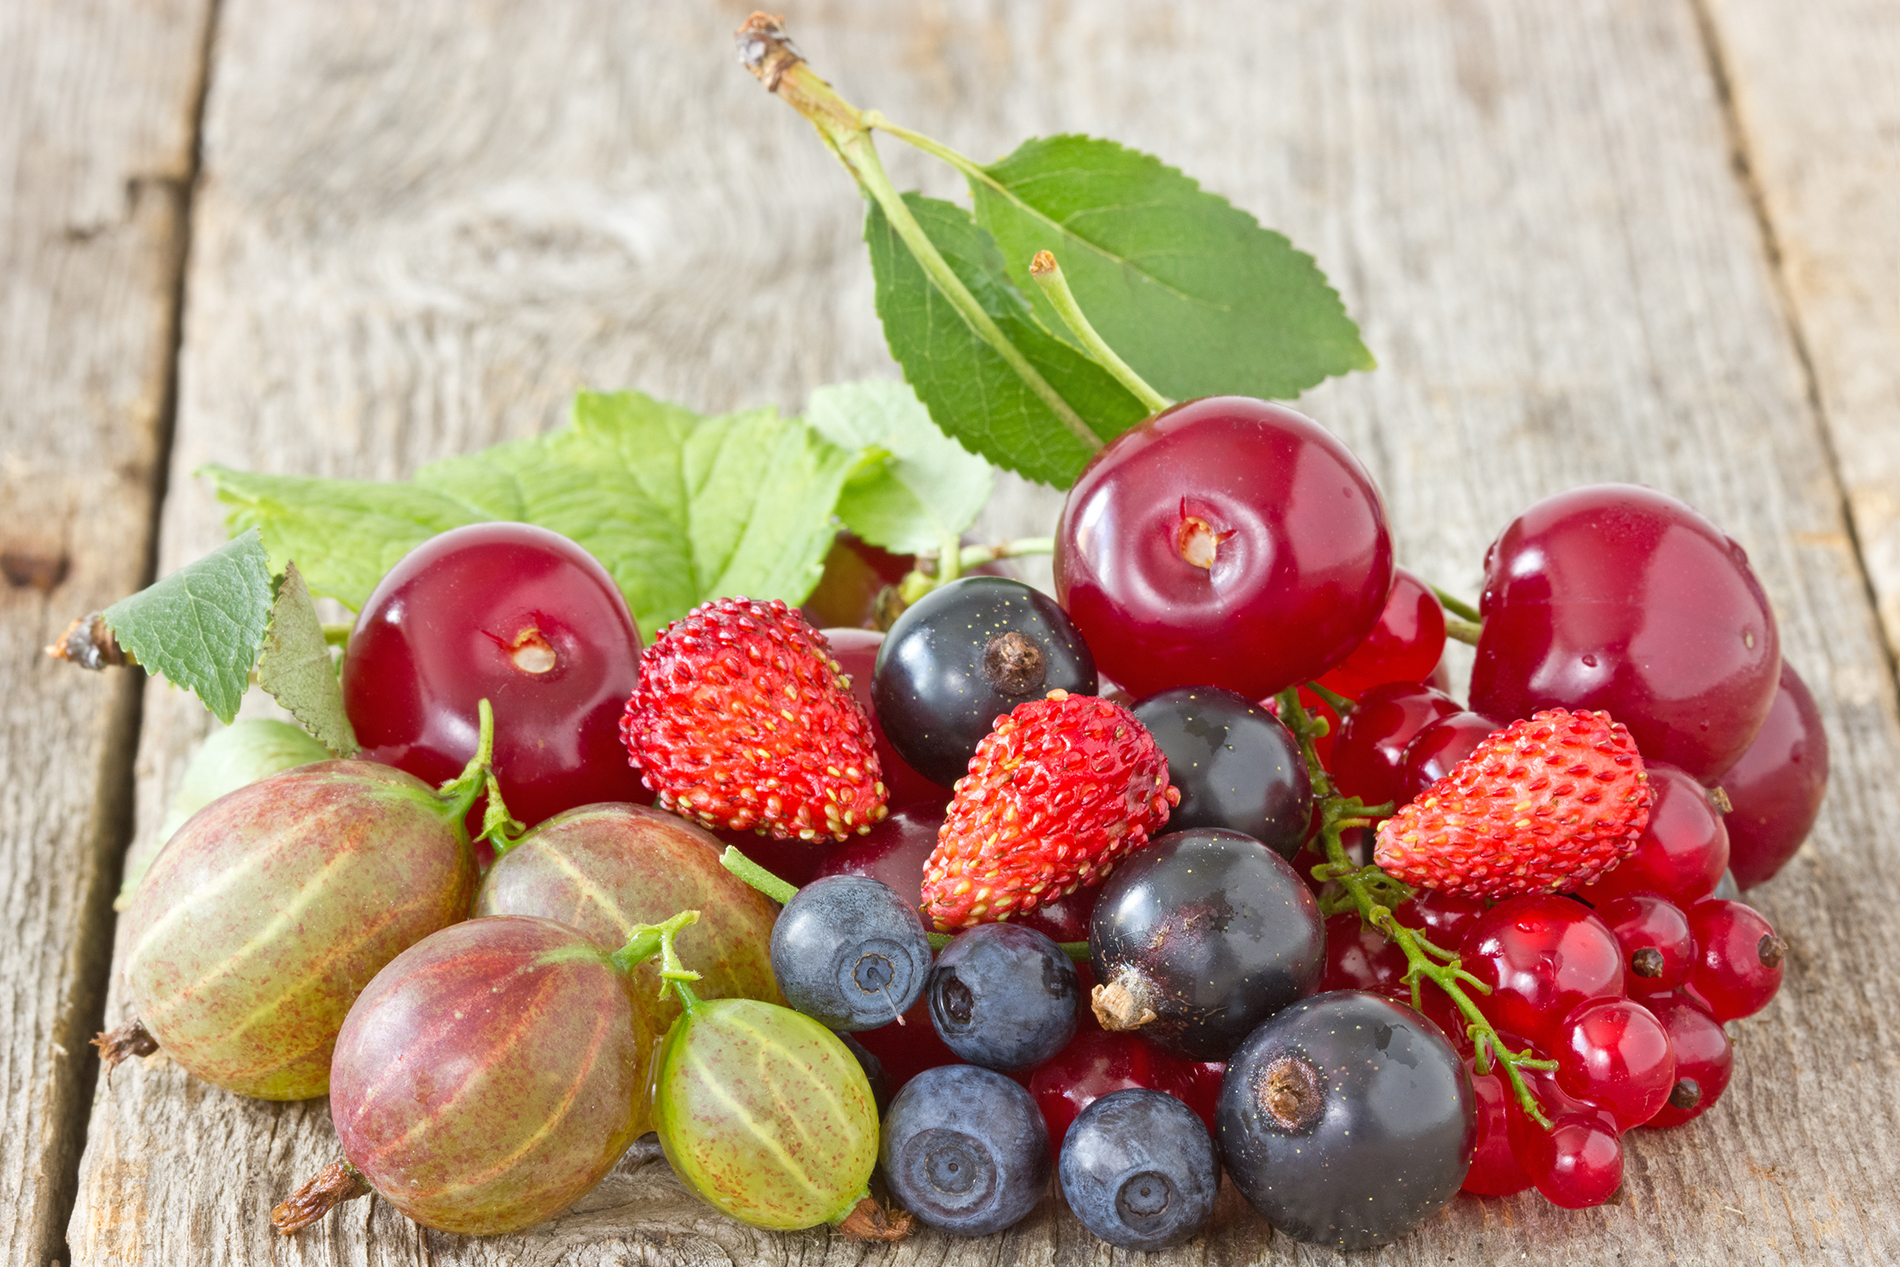 Fruits such as blueberries, strawberries and currants 53044